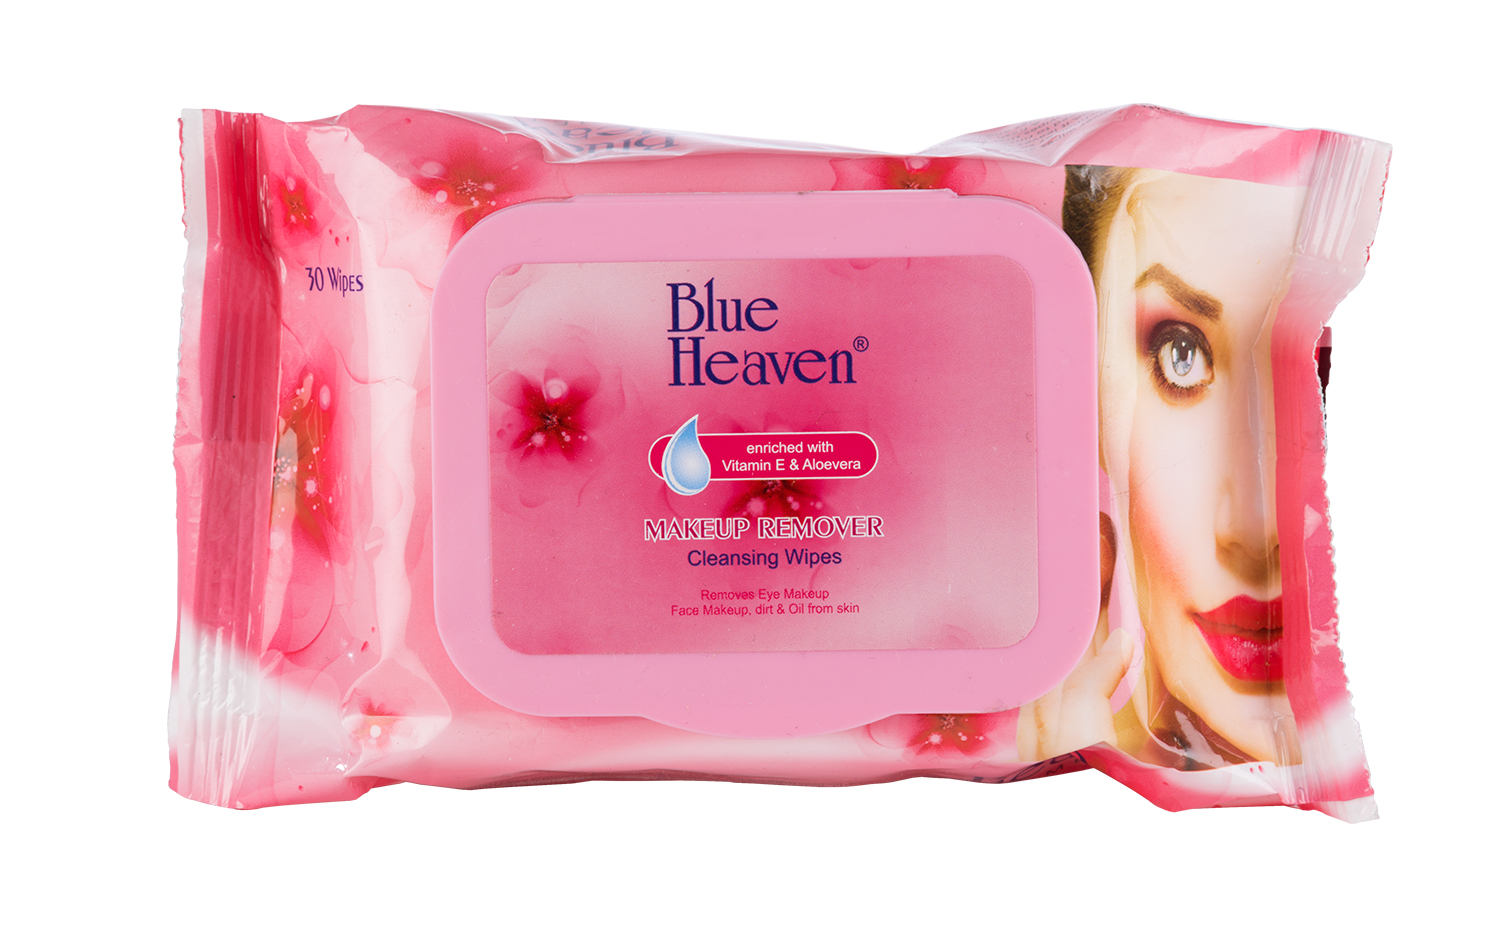 Blue Heaven Makeup Remover & Cleansing Wipes (Pack of 2)